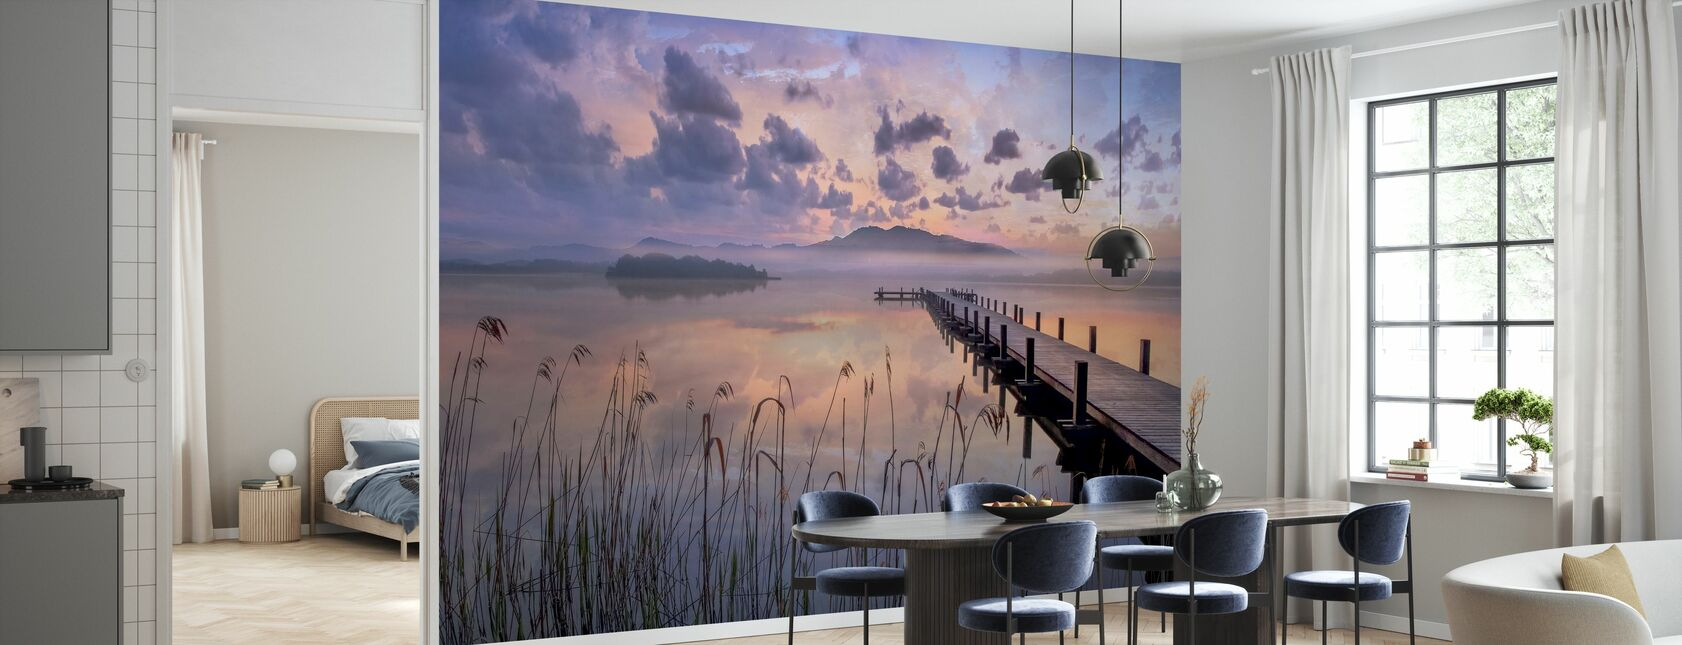 Sunset by the Jetty - Wallpaper - Kitchen